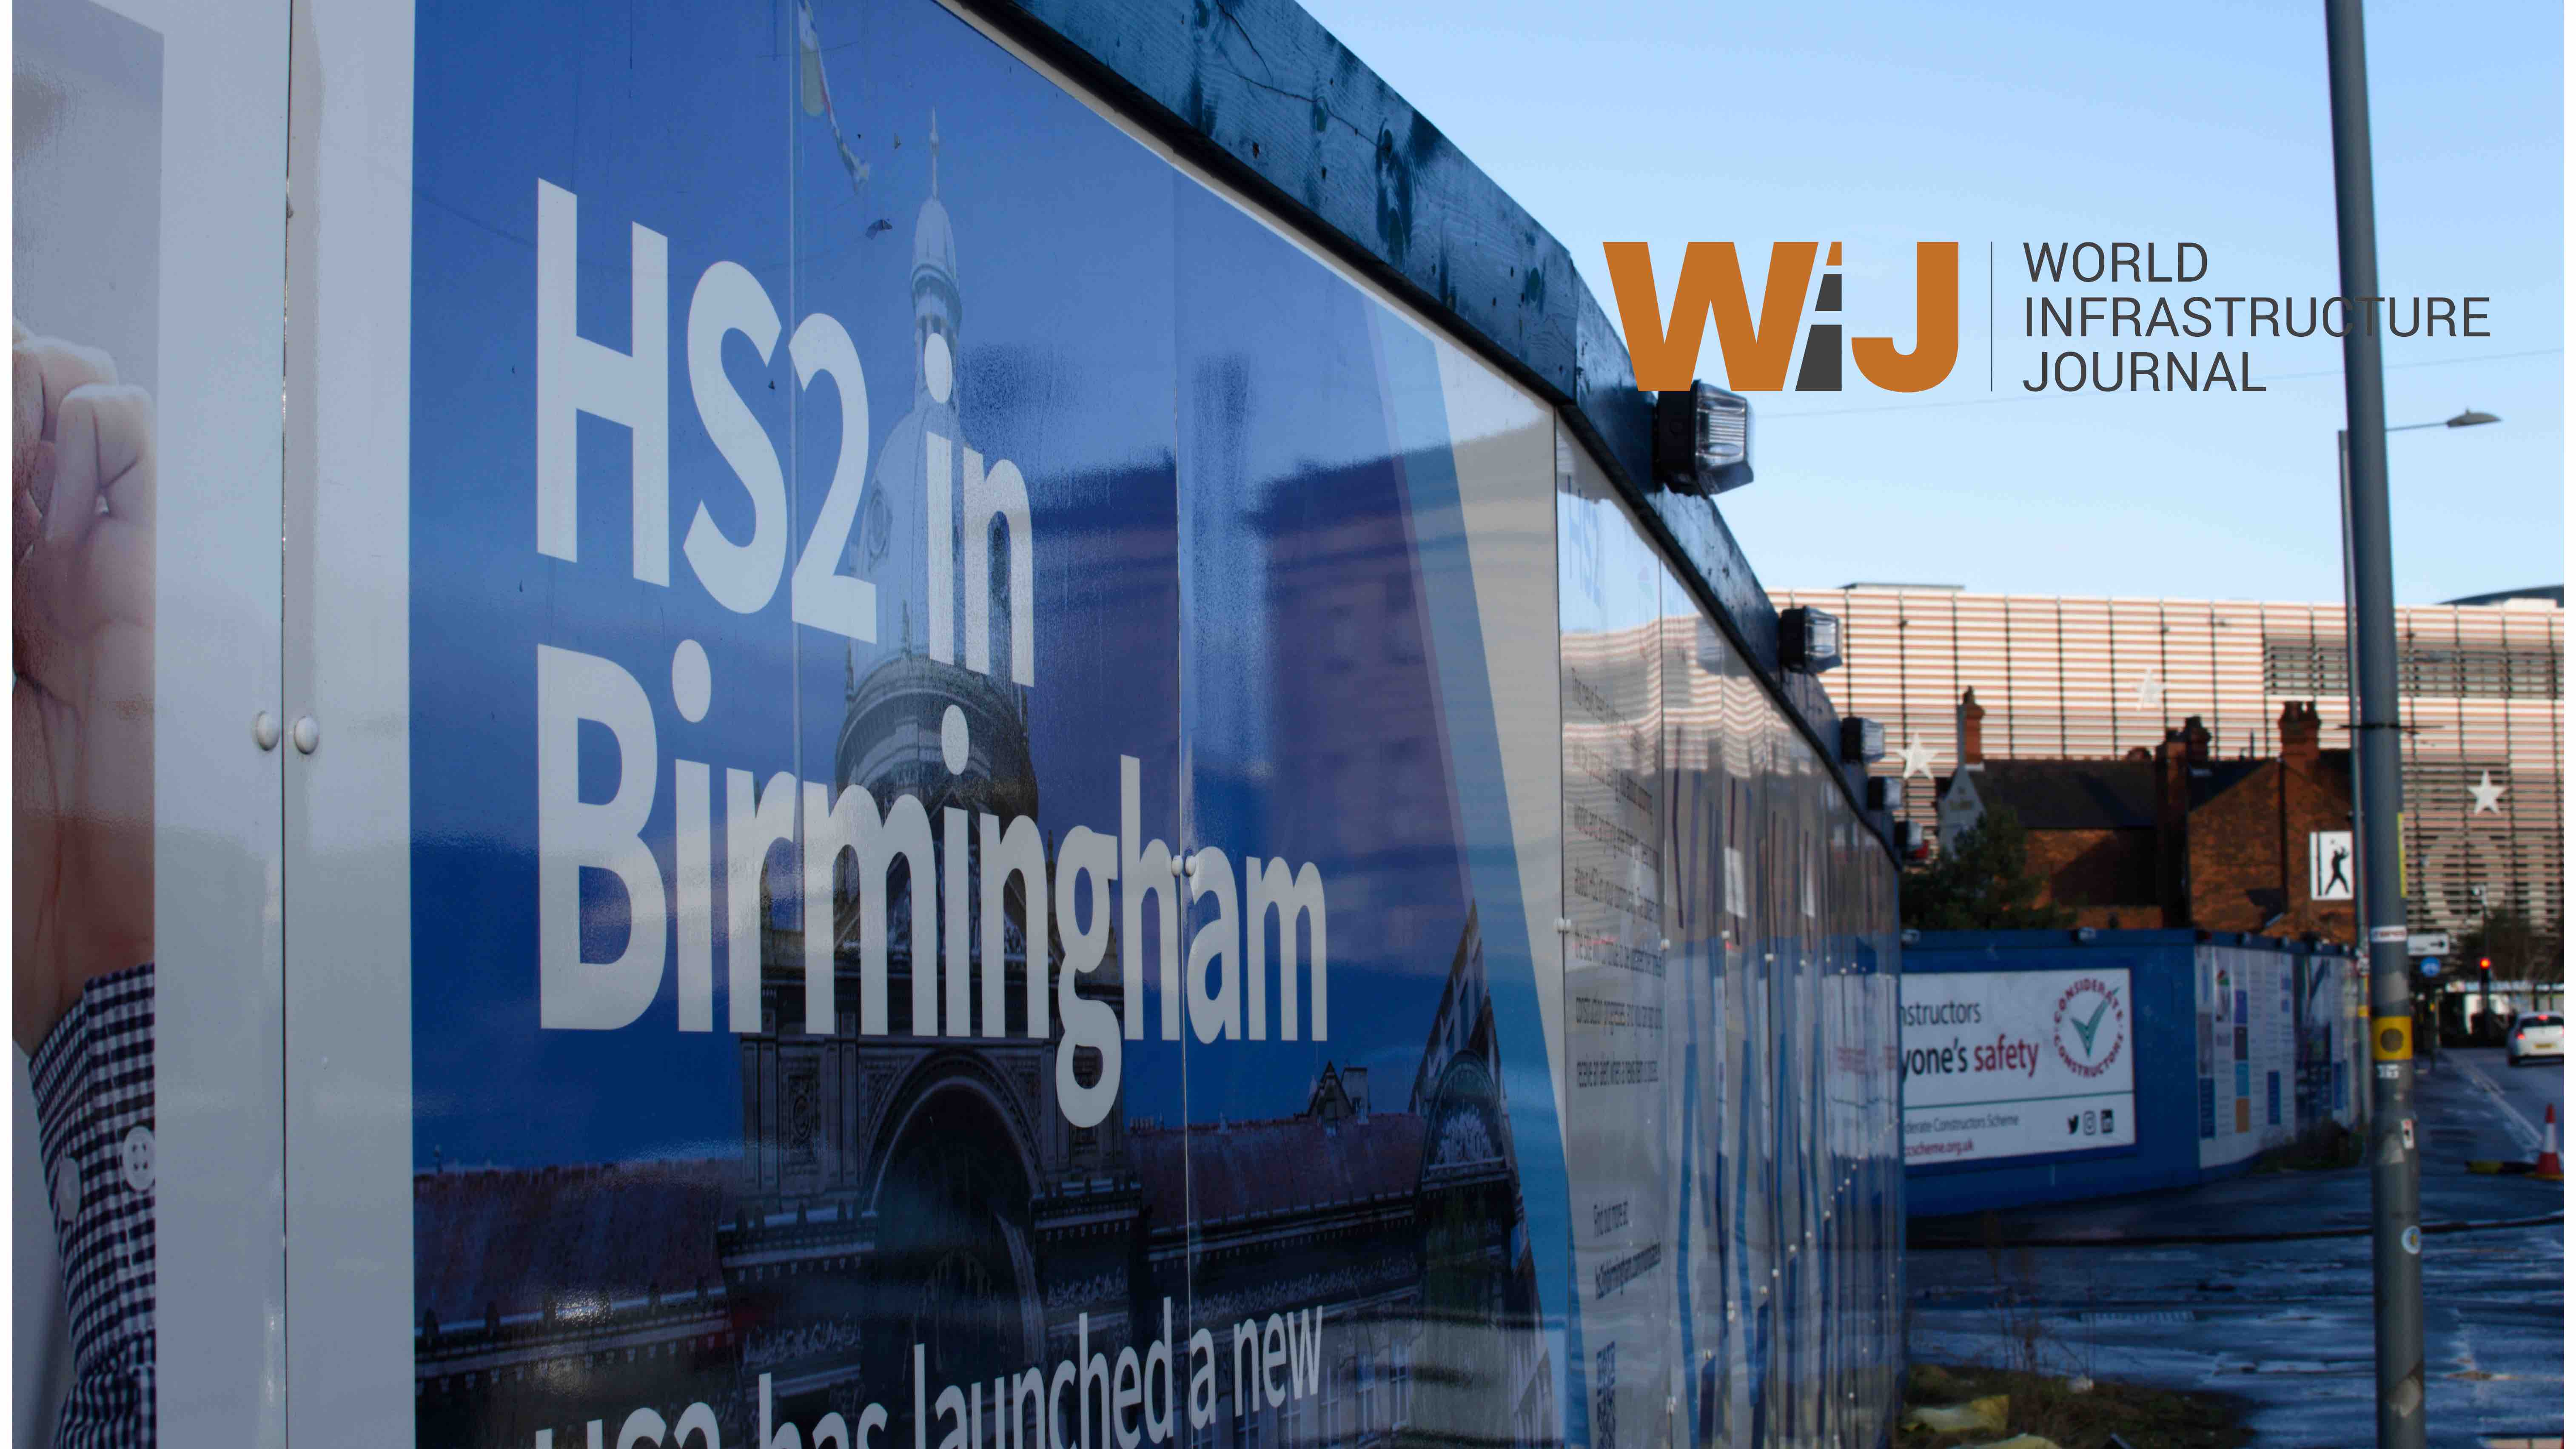 Second phase of HS2 approved